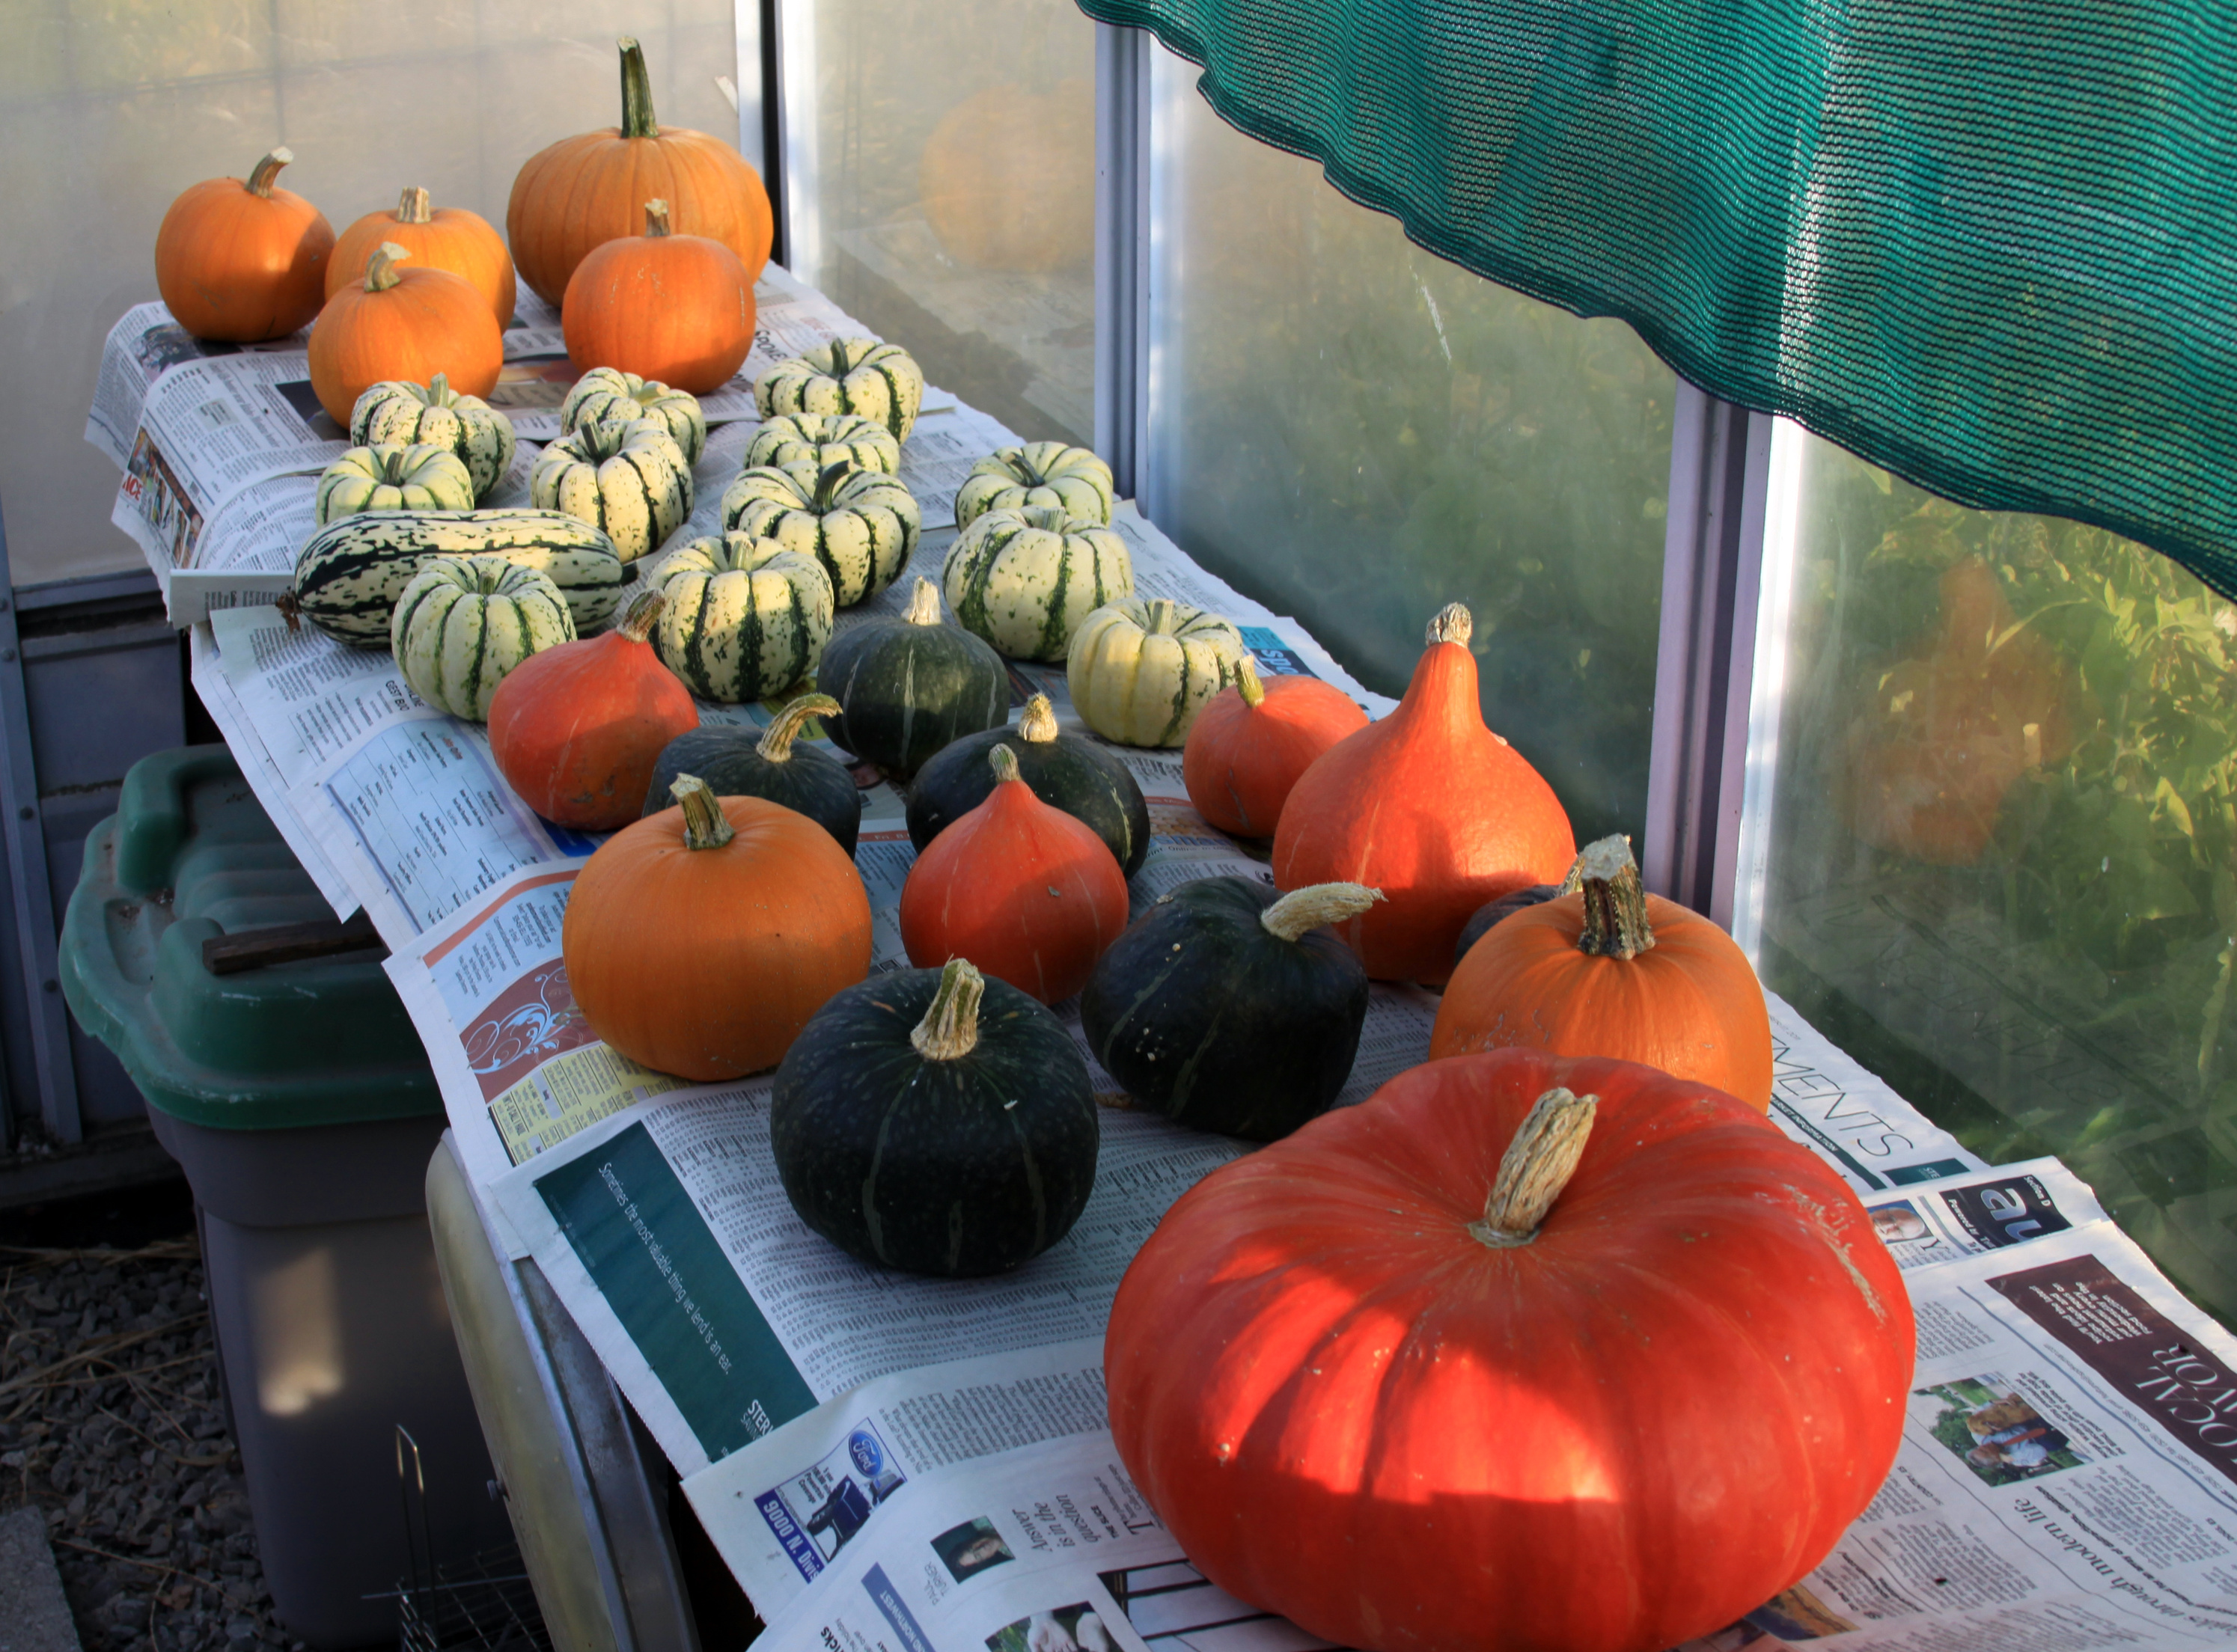 Last Yearu0027s Winter Squash And Pumpkins Were Cured In A Sunny Greenhouse  Before Going Into Storage